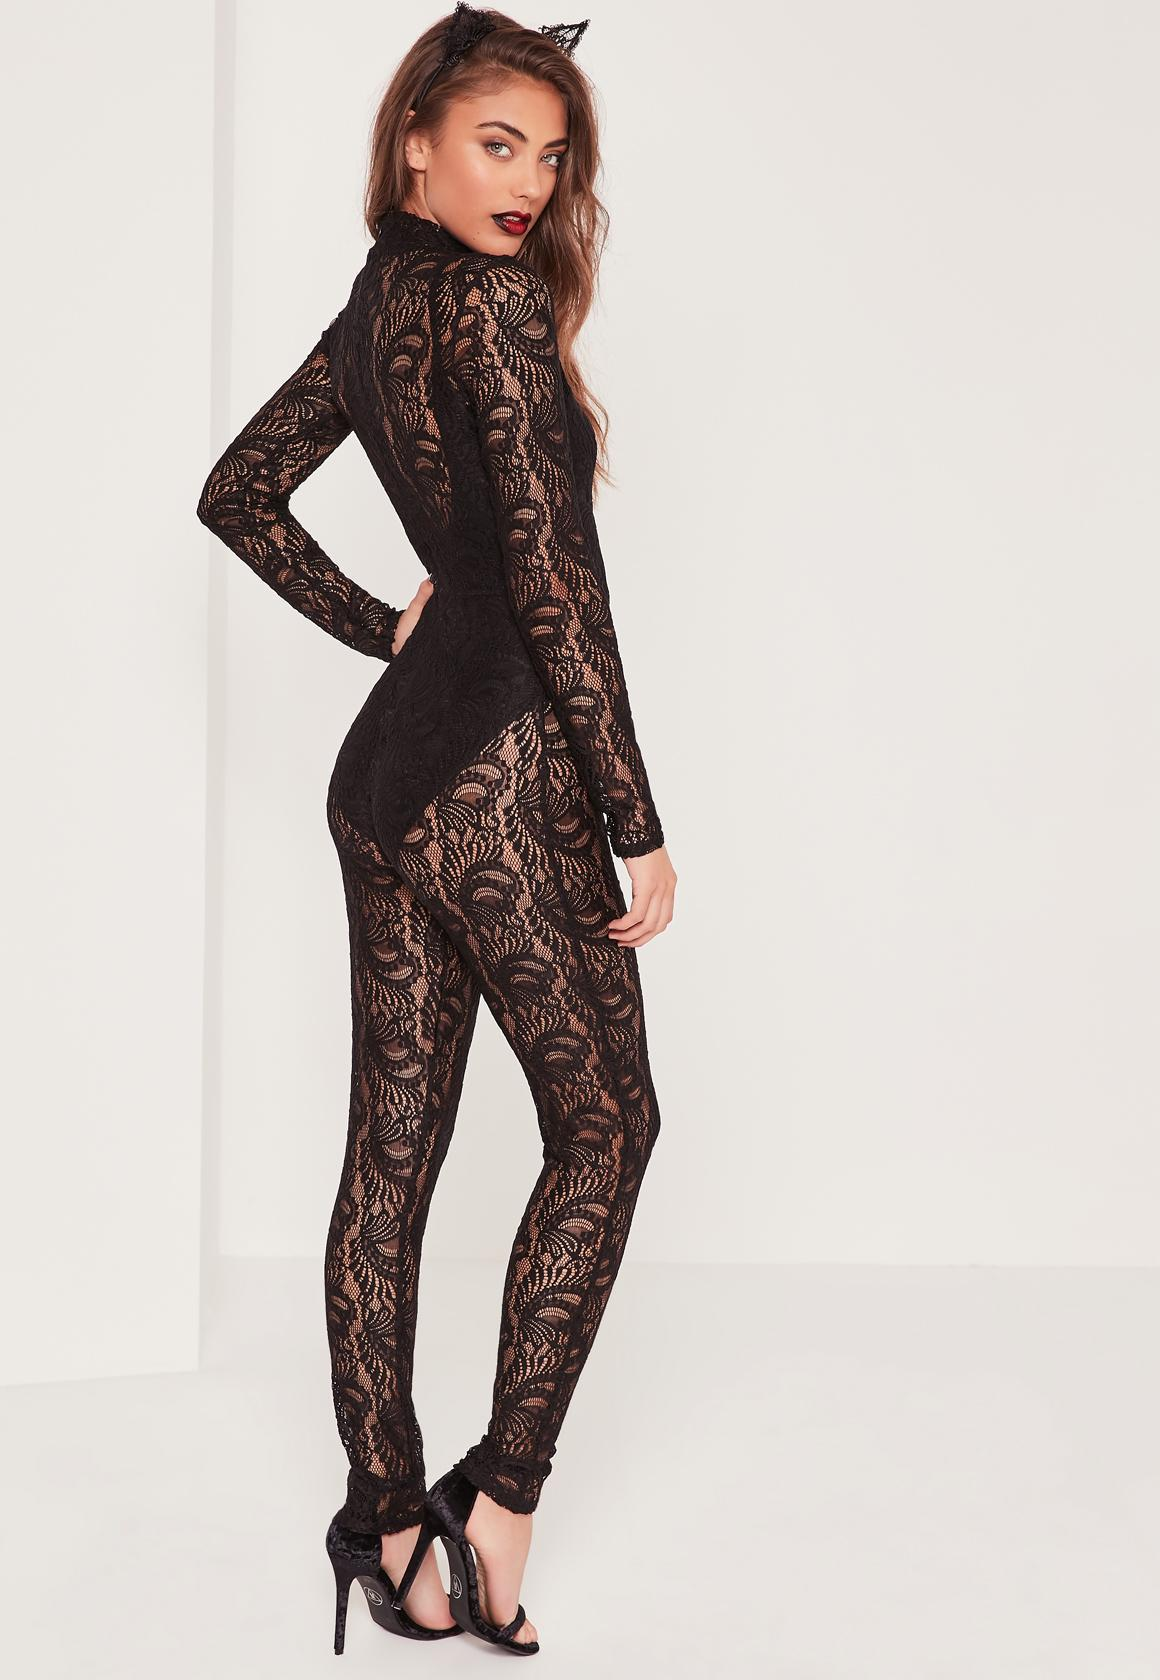 lyst - missguided halloween lace unitard black in black